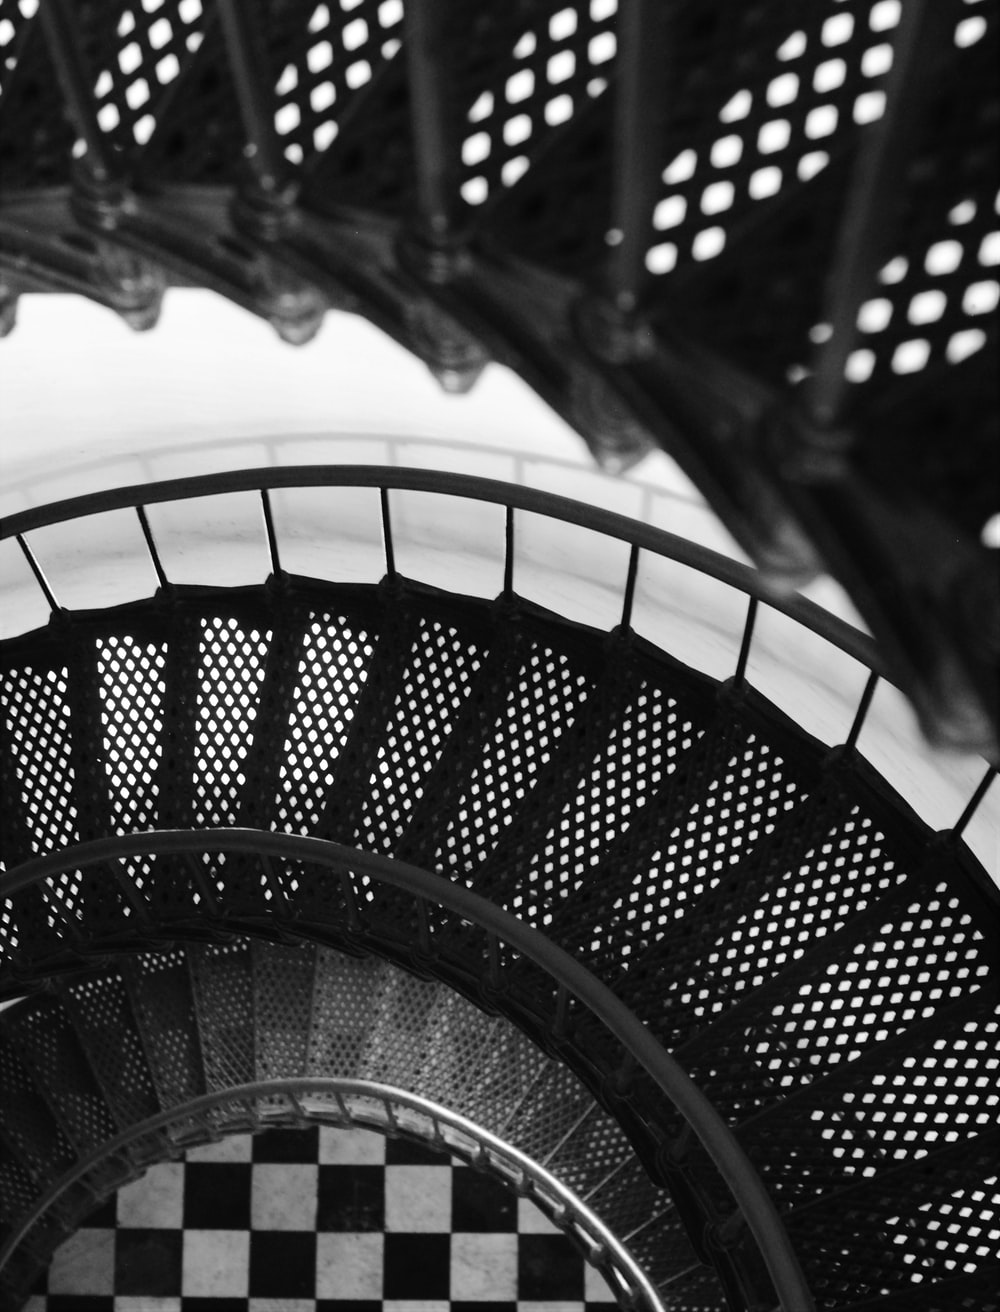 black metal spiral staircase in grayscale photography